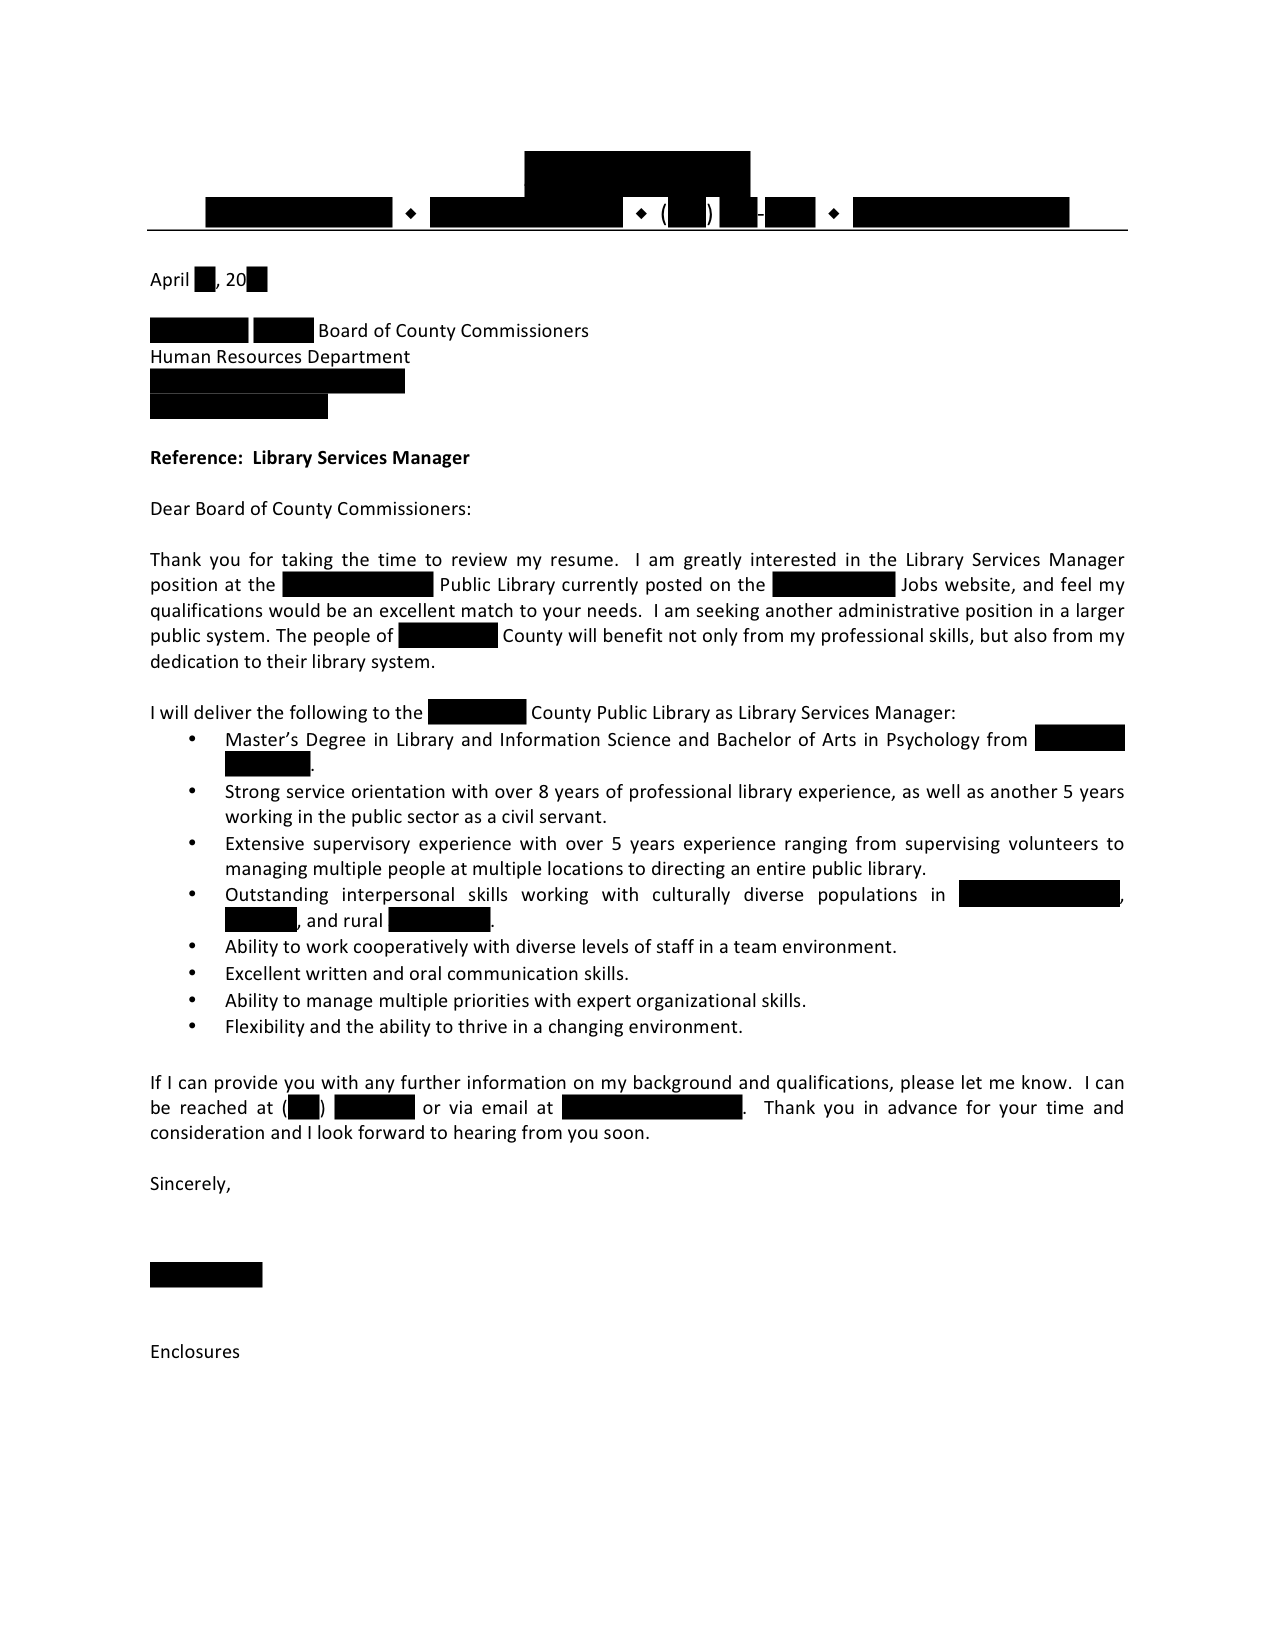 advertisements - Administrative Position Cover Letter